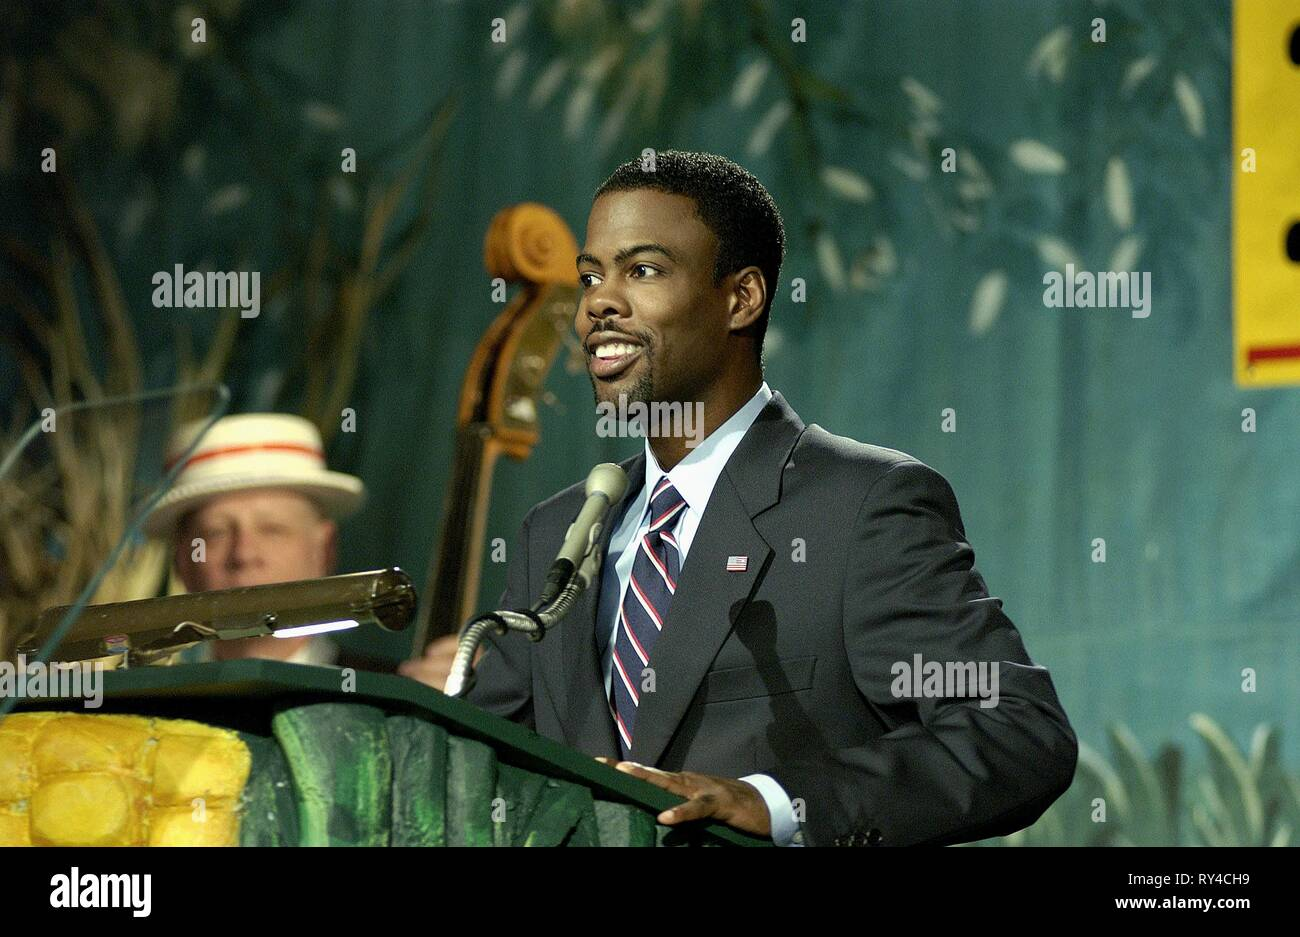 CHRIS ROCK, HEAD OF STATE, 2003 - Stock Image